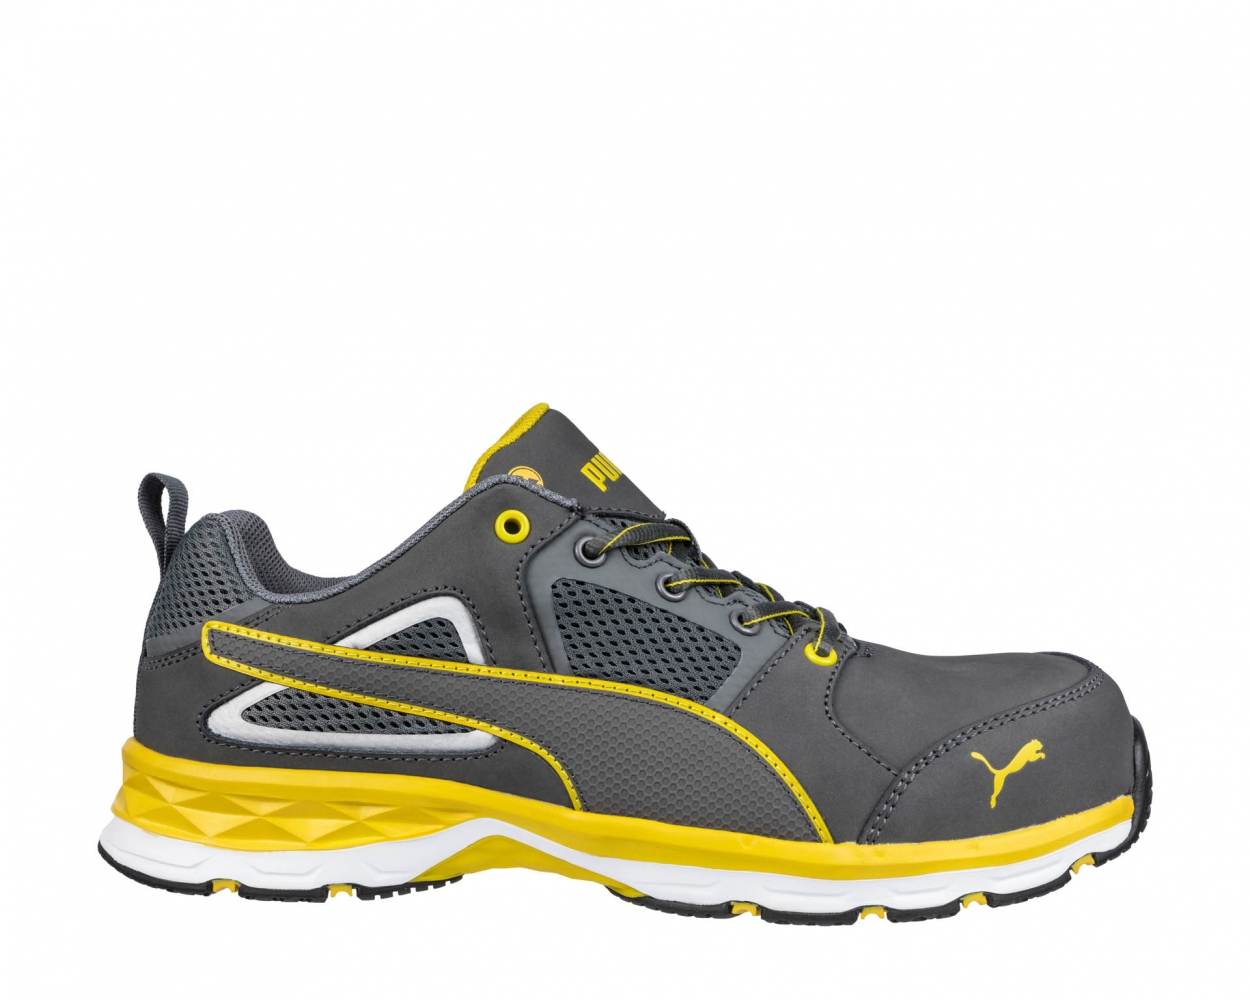 f4e97c6397f PUMA 643800 PACE 2.0 YELLOW LOW safety shoes S1P ESD HRO SRC ...